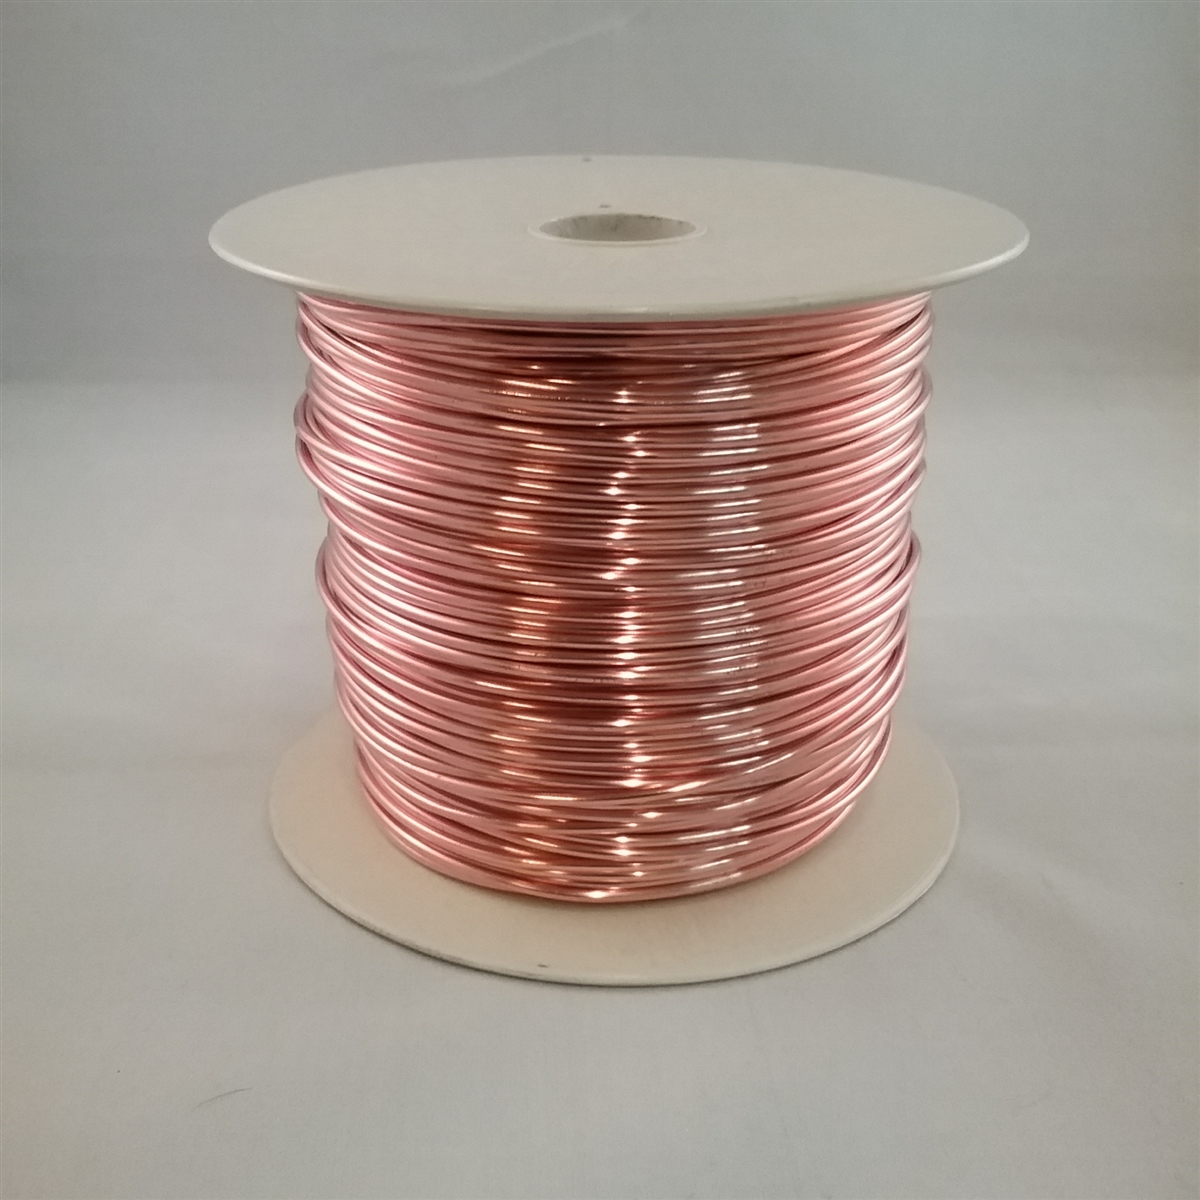 SOFT WIRE 14 GA .064 5#SPOOL